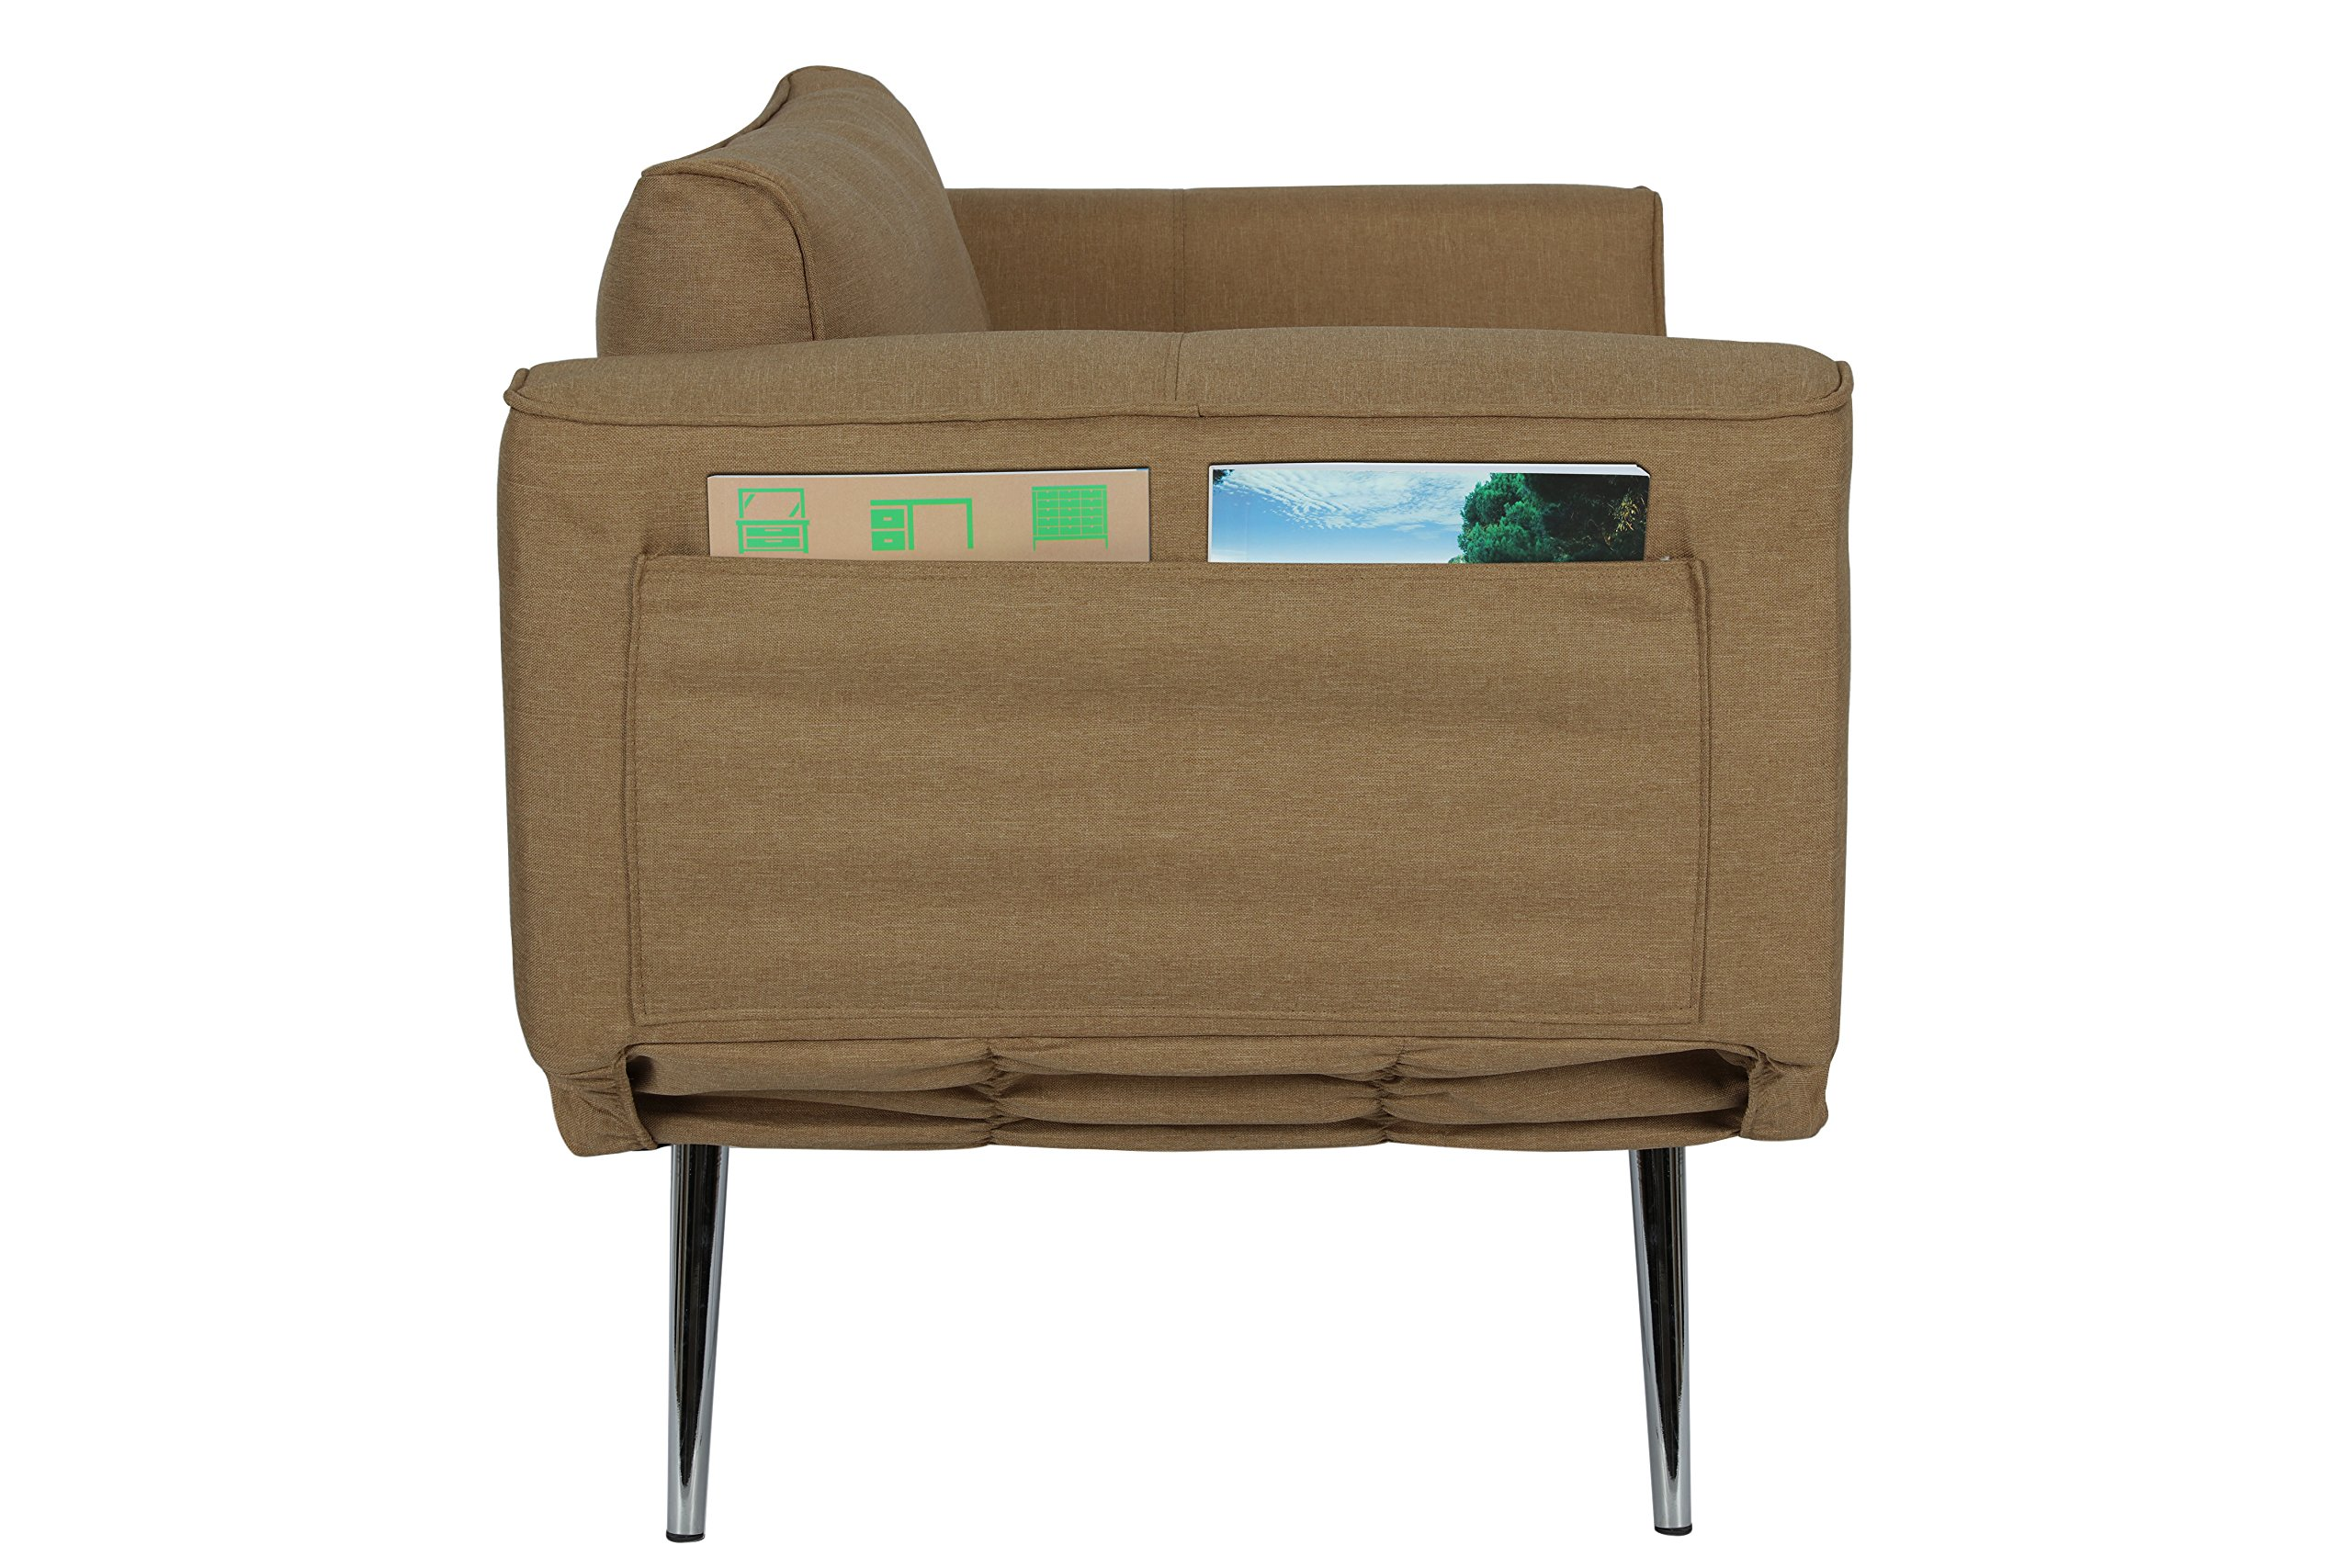 DHP Euro Sofa Futon Loveseat with Chrome Legs and Adjustable Armrests - Tan by DHP (Image #6)